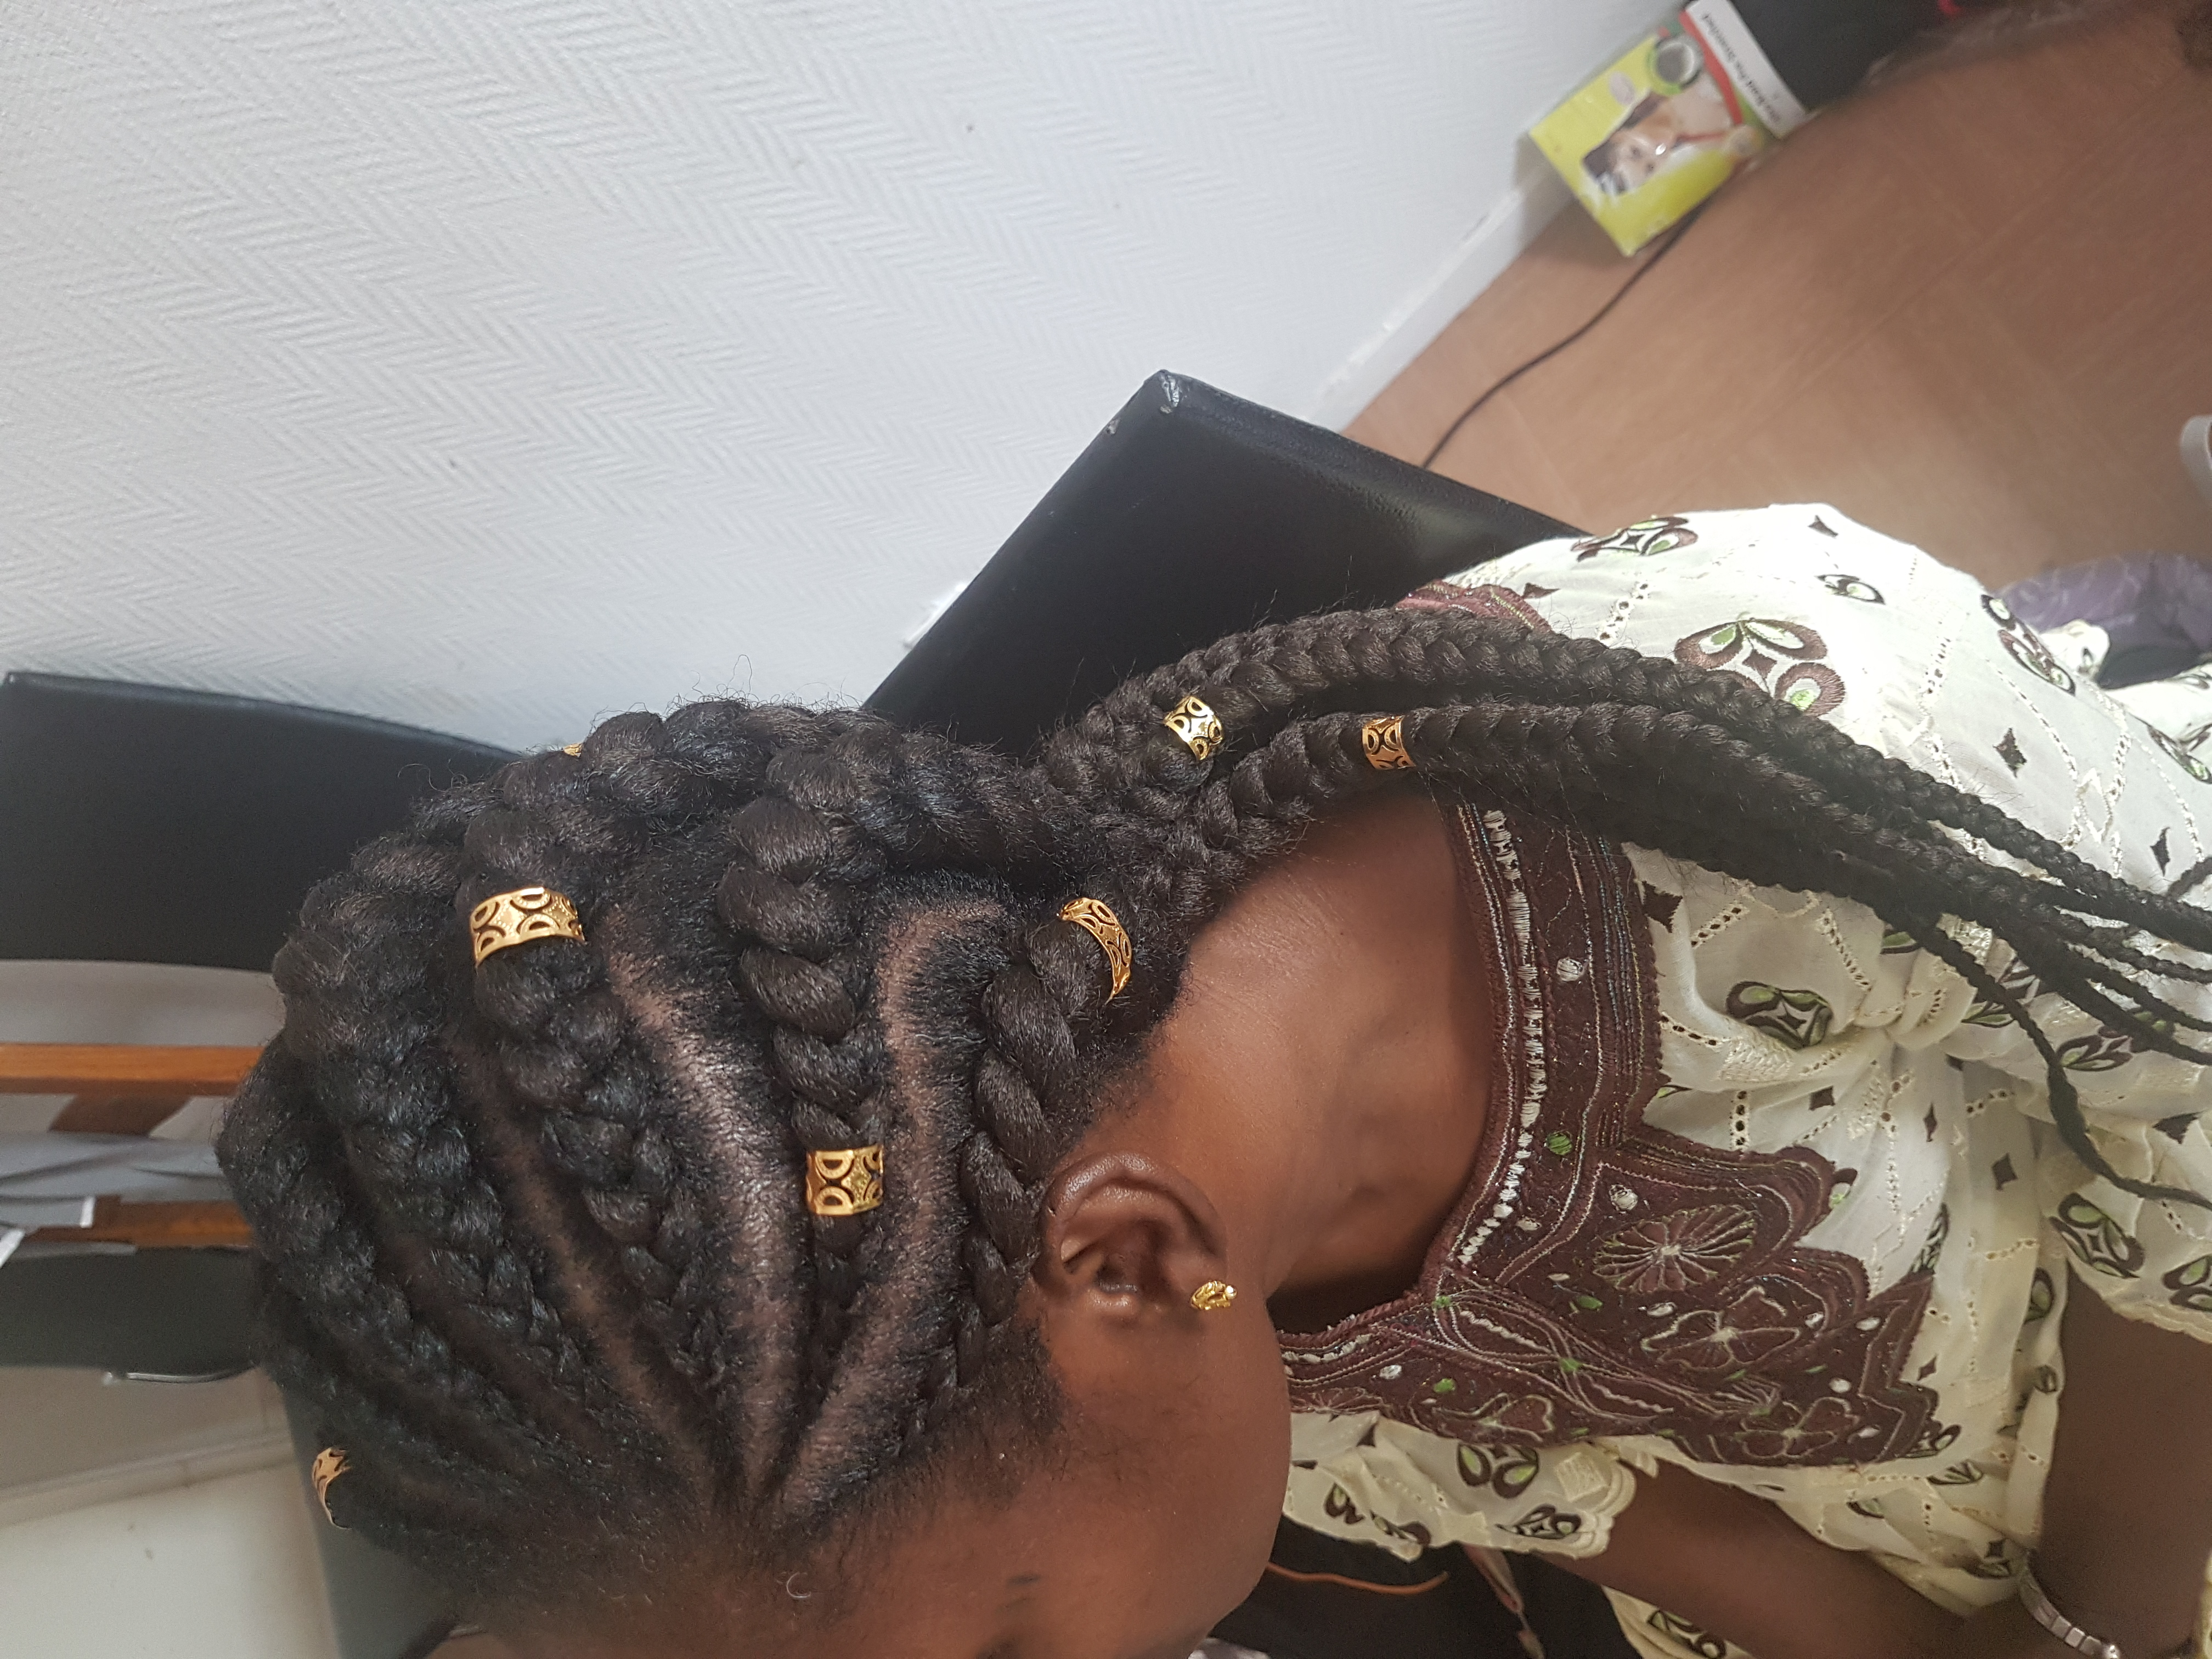 salon de coiffure afro tresse tresses box braids crochet braids vanilles tissages paris 75 77 78 91 92 93 94 95 FZOUYEZS